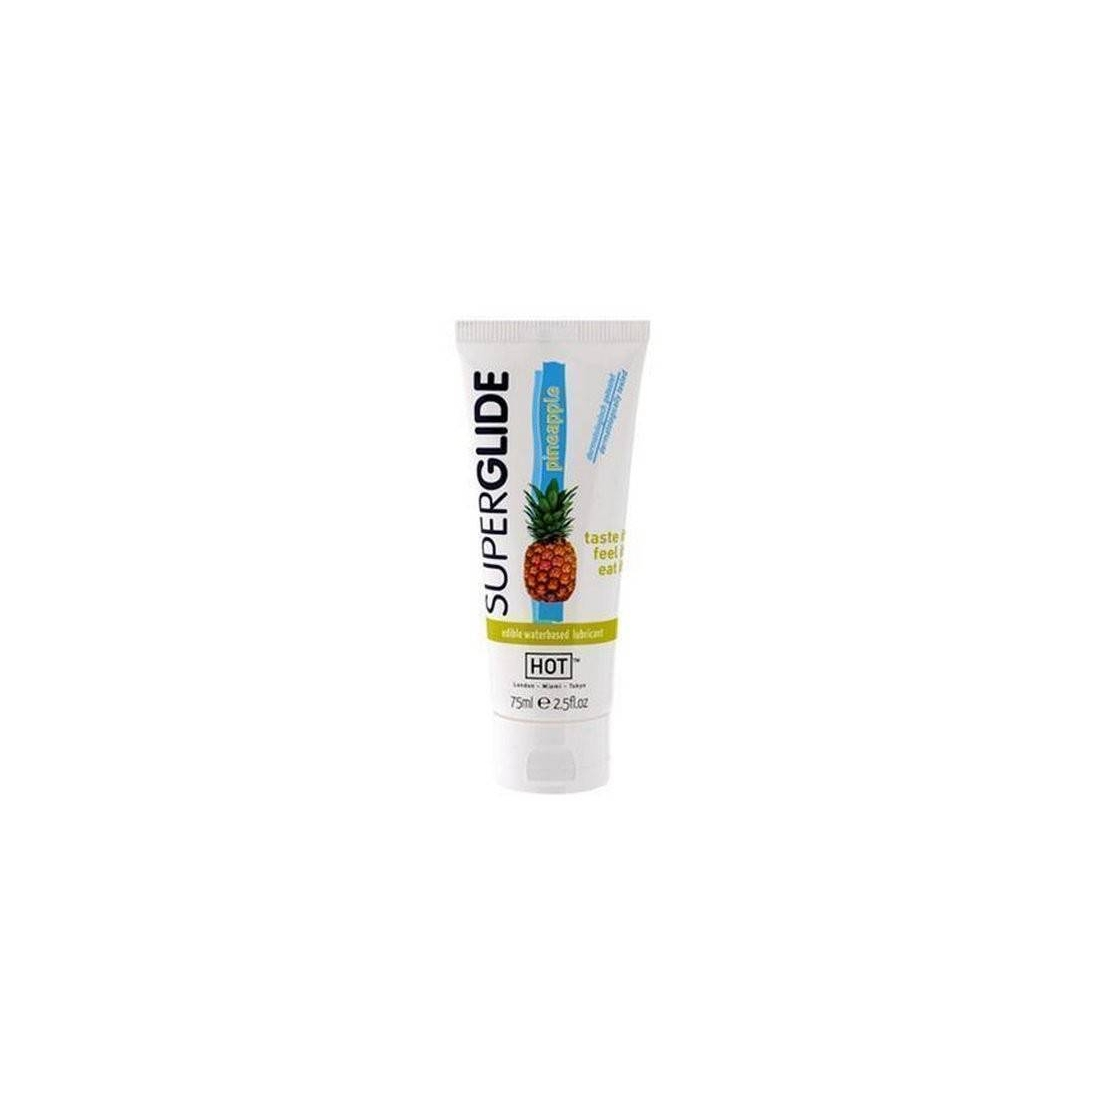 SUPERGLIDE LUBRIFICANTE ALL'ANANAS 75ml